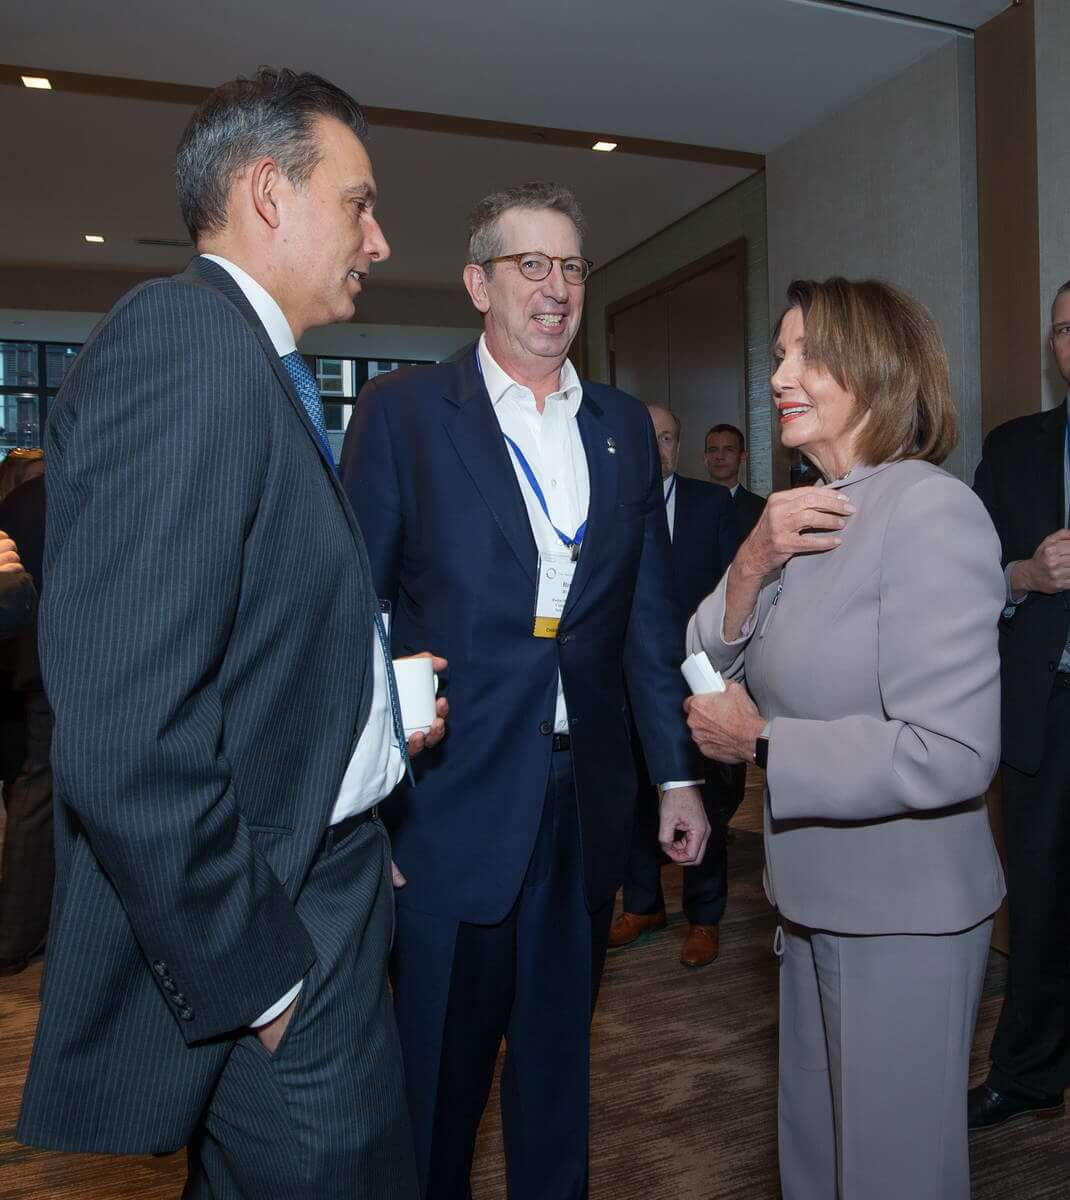 Christoph Donner (Allianz Real Estate of America), William C. Rudin (Rudin Management Company, Inc.), and Speaker of the House Nancy Pelosi (D-CA)